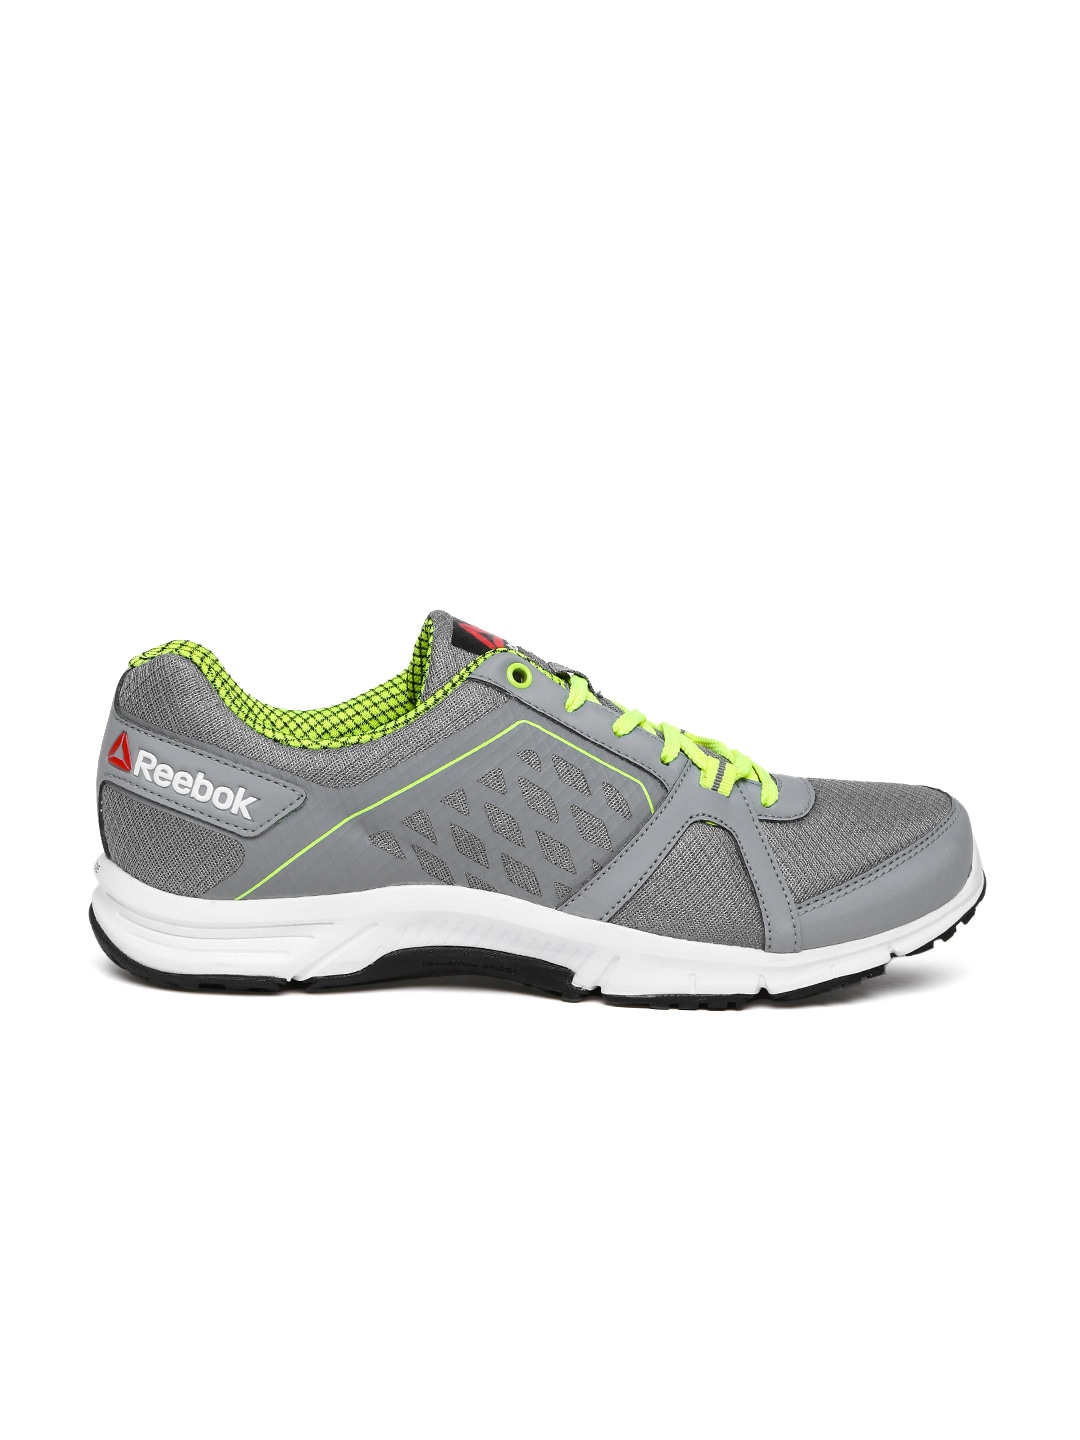 Reebok Shoes Models With Price In India